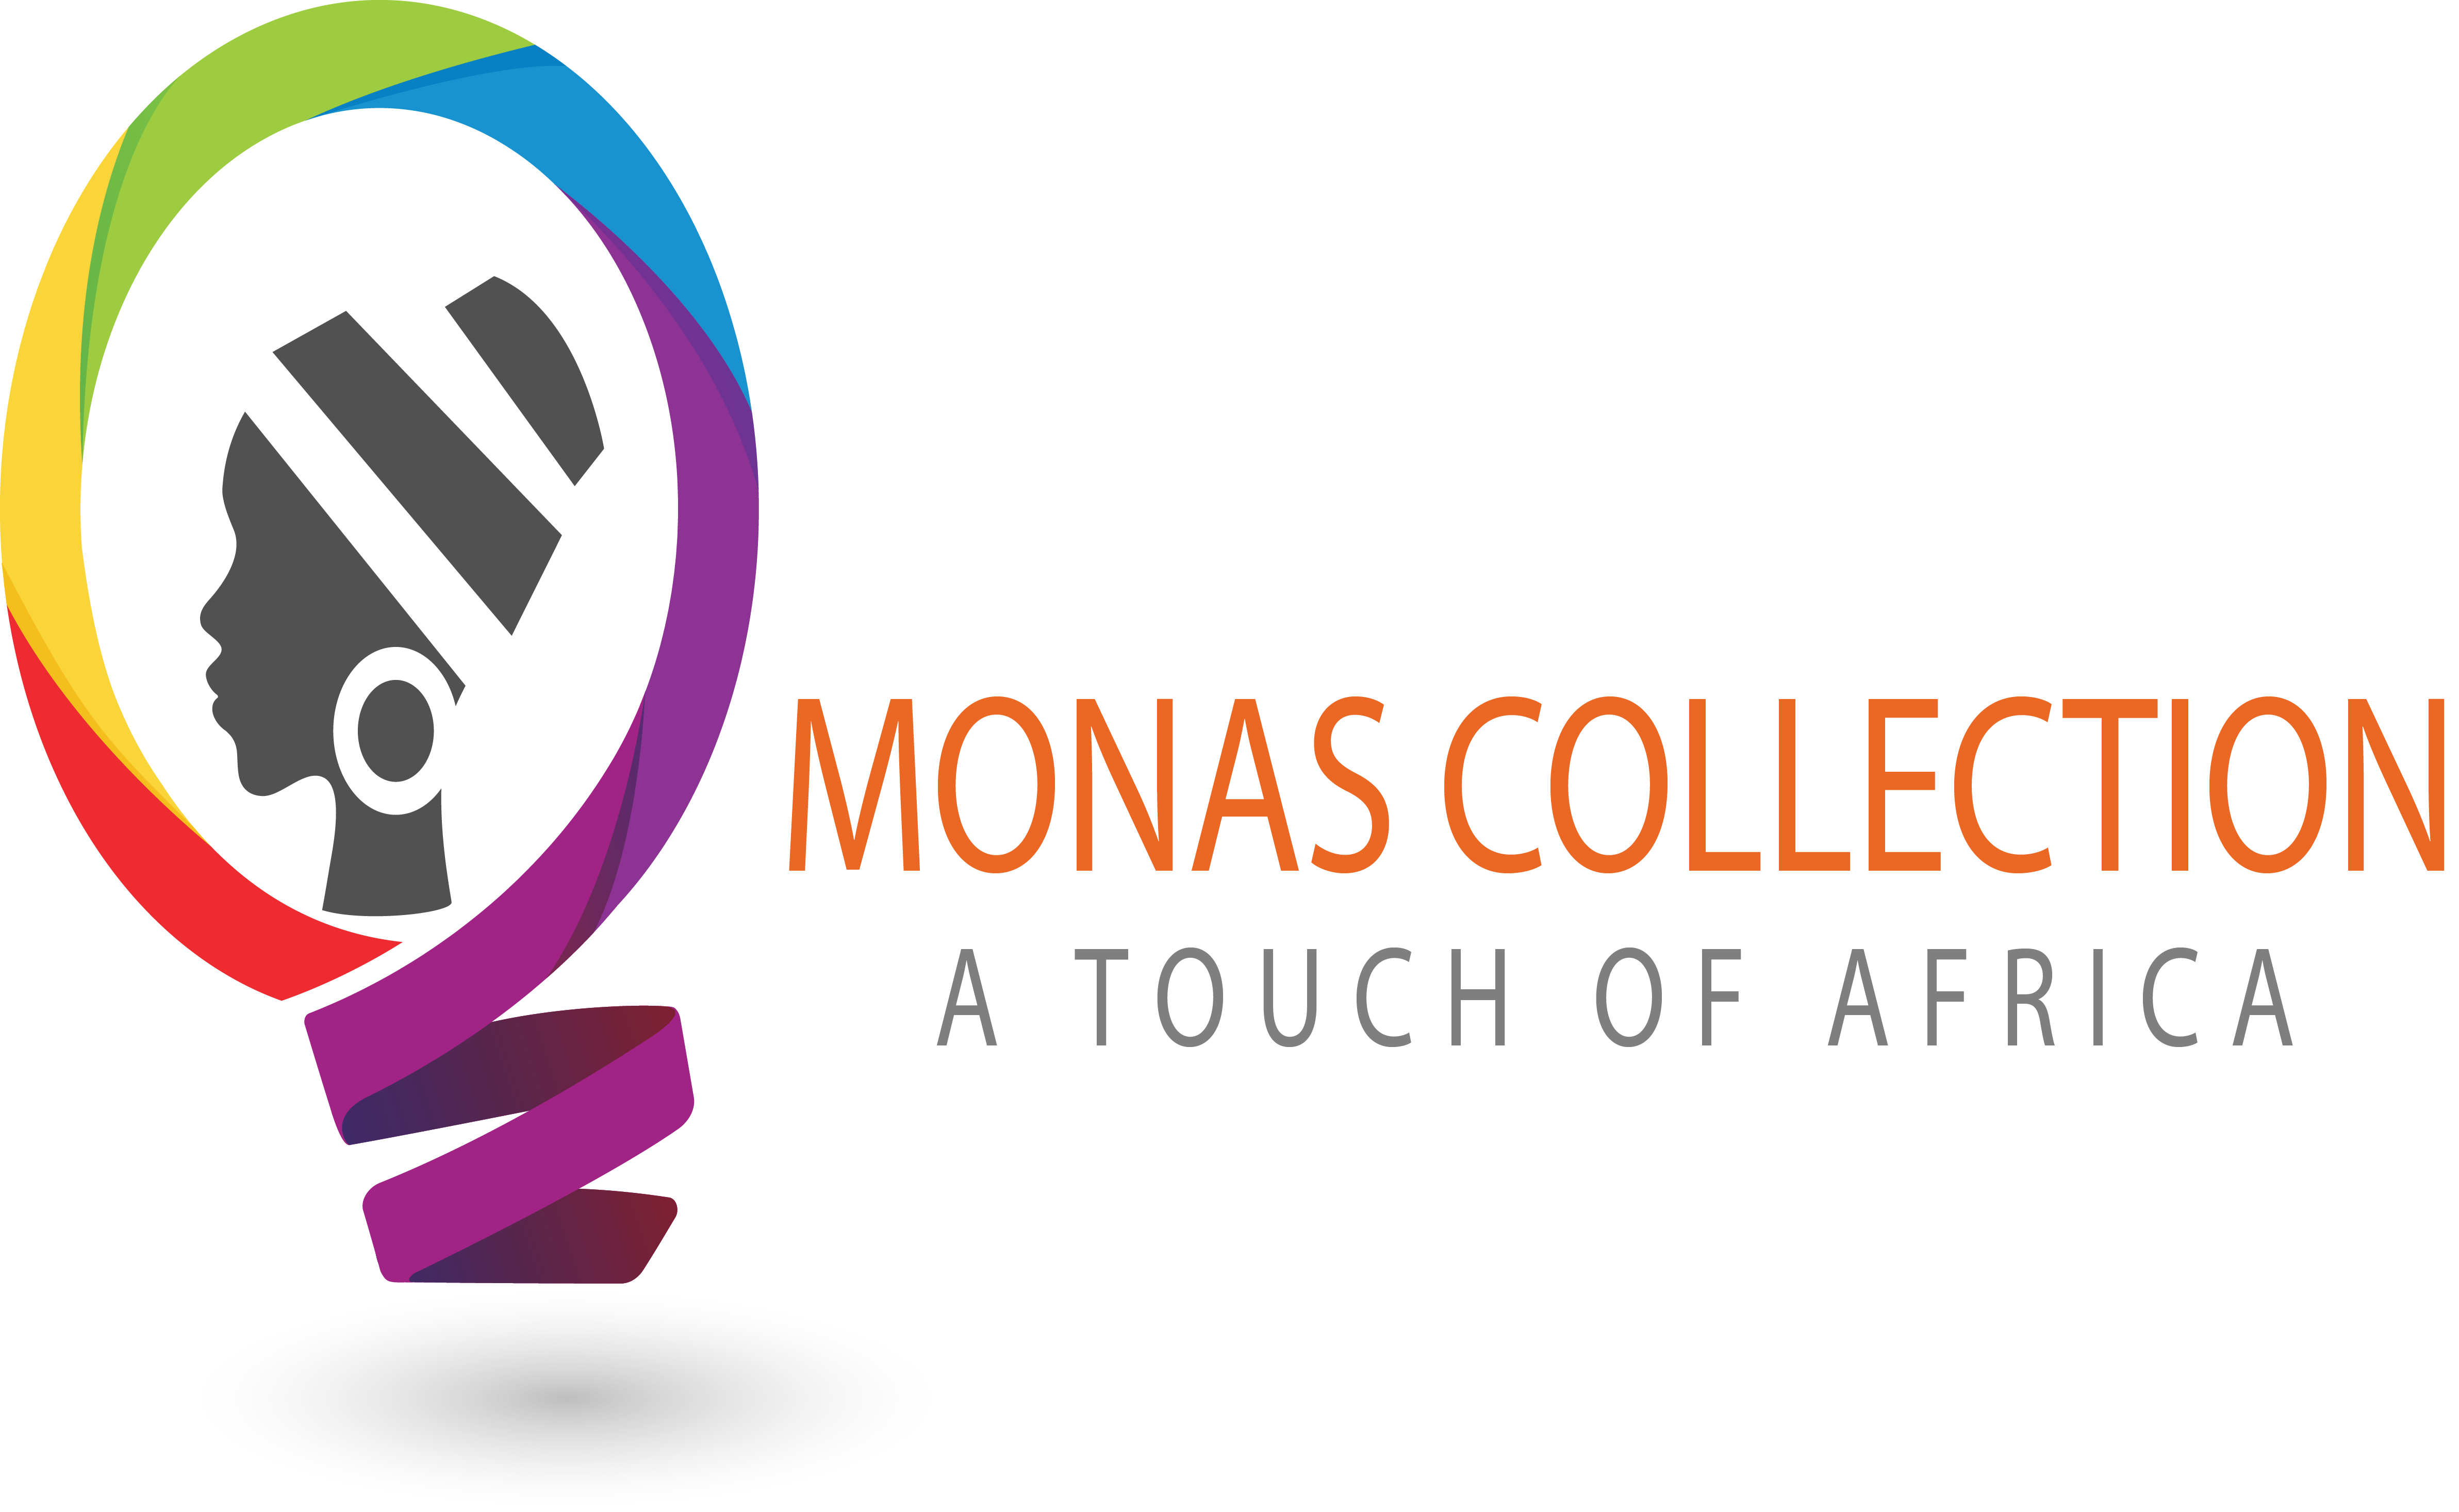 Monas Collection